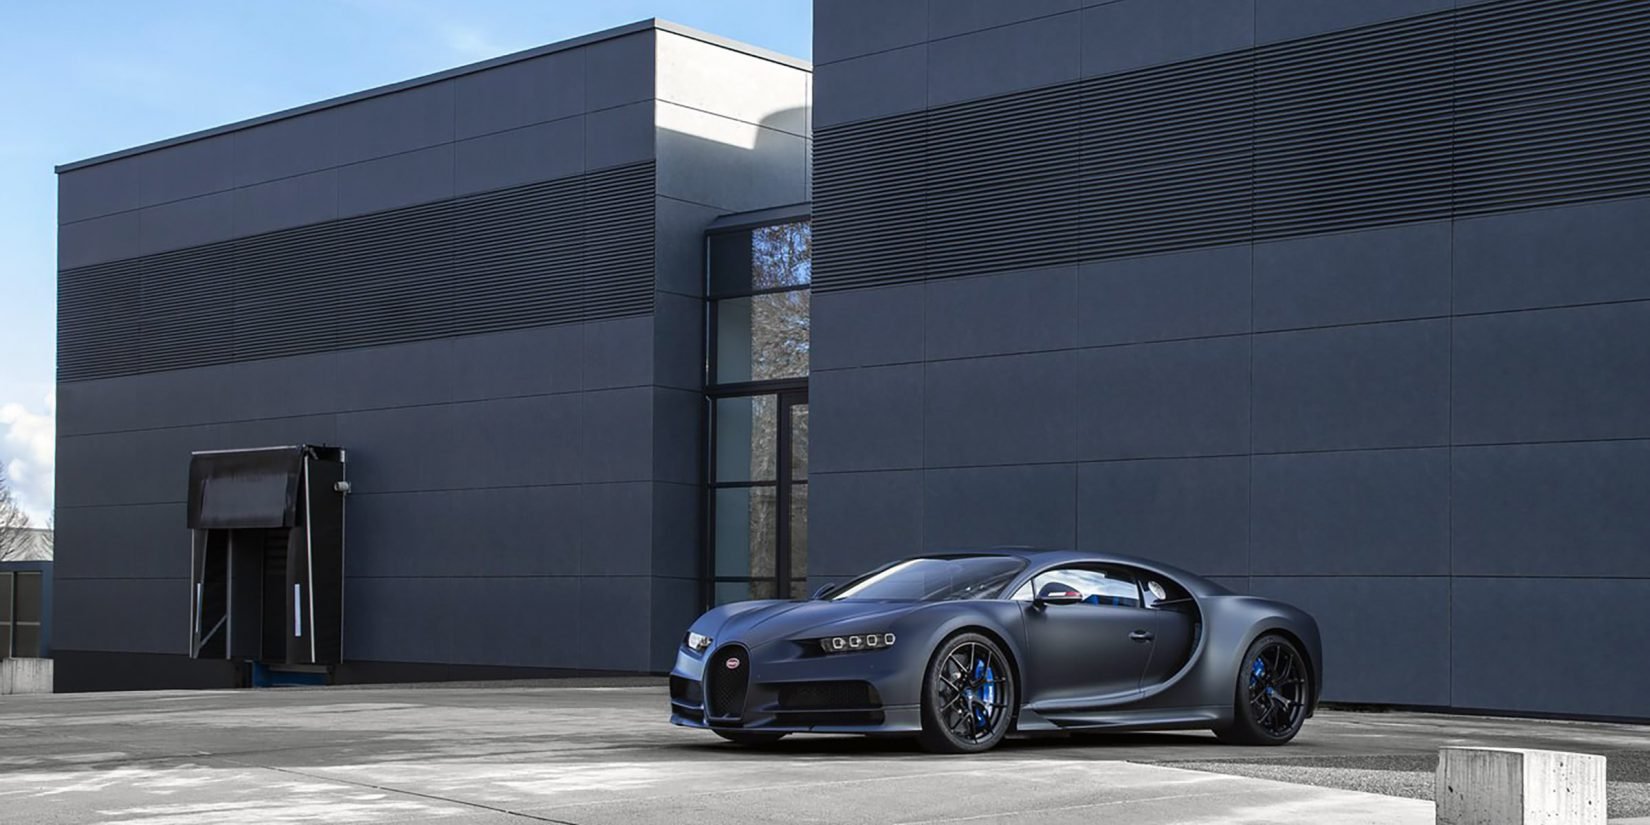 Luxurious And Lavish: Why A Bugatti Will Cost You Several Million?